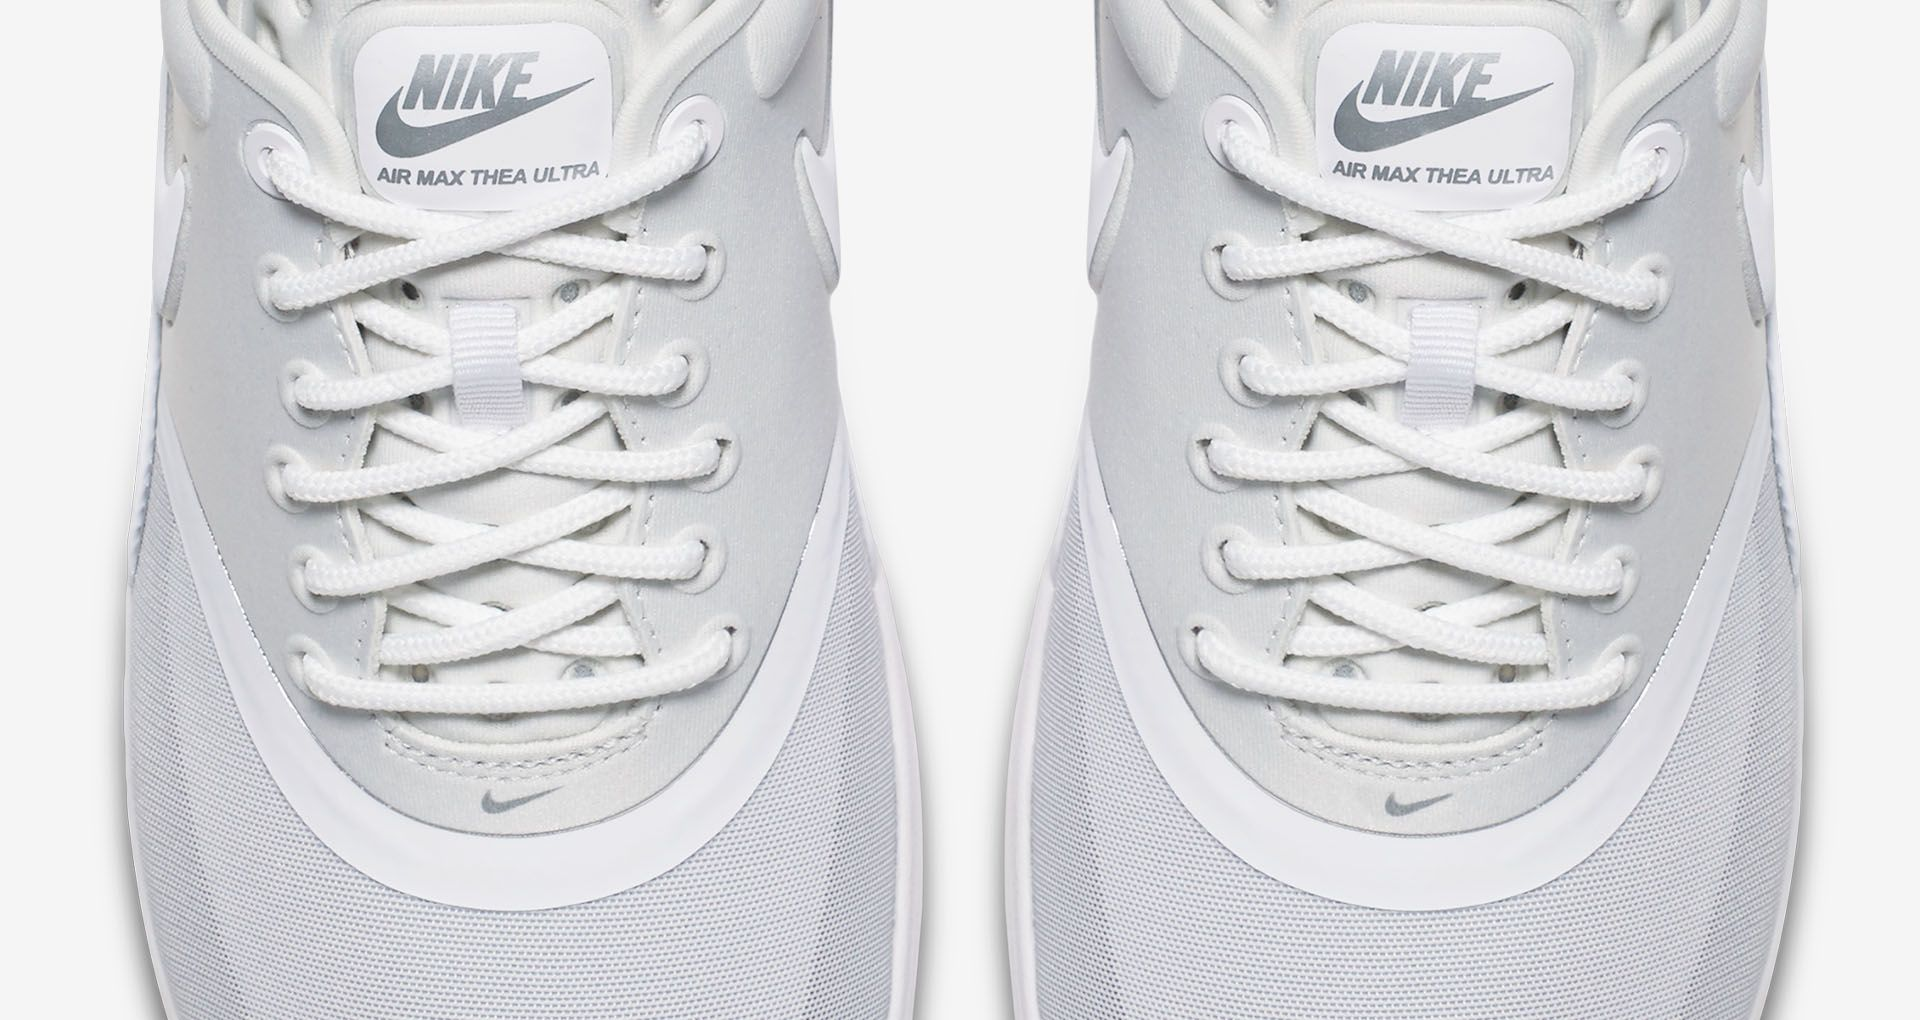 Women's Nike Air Max Thea Ultra 'White & Silver'. Nike SNKRS